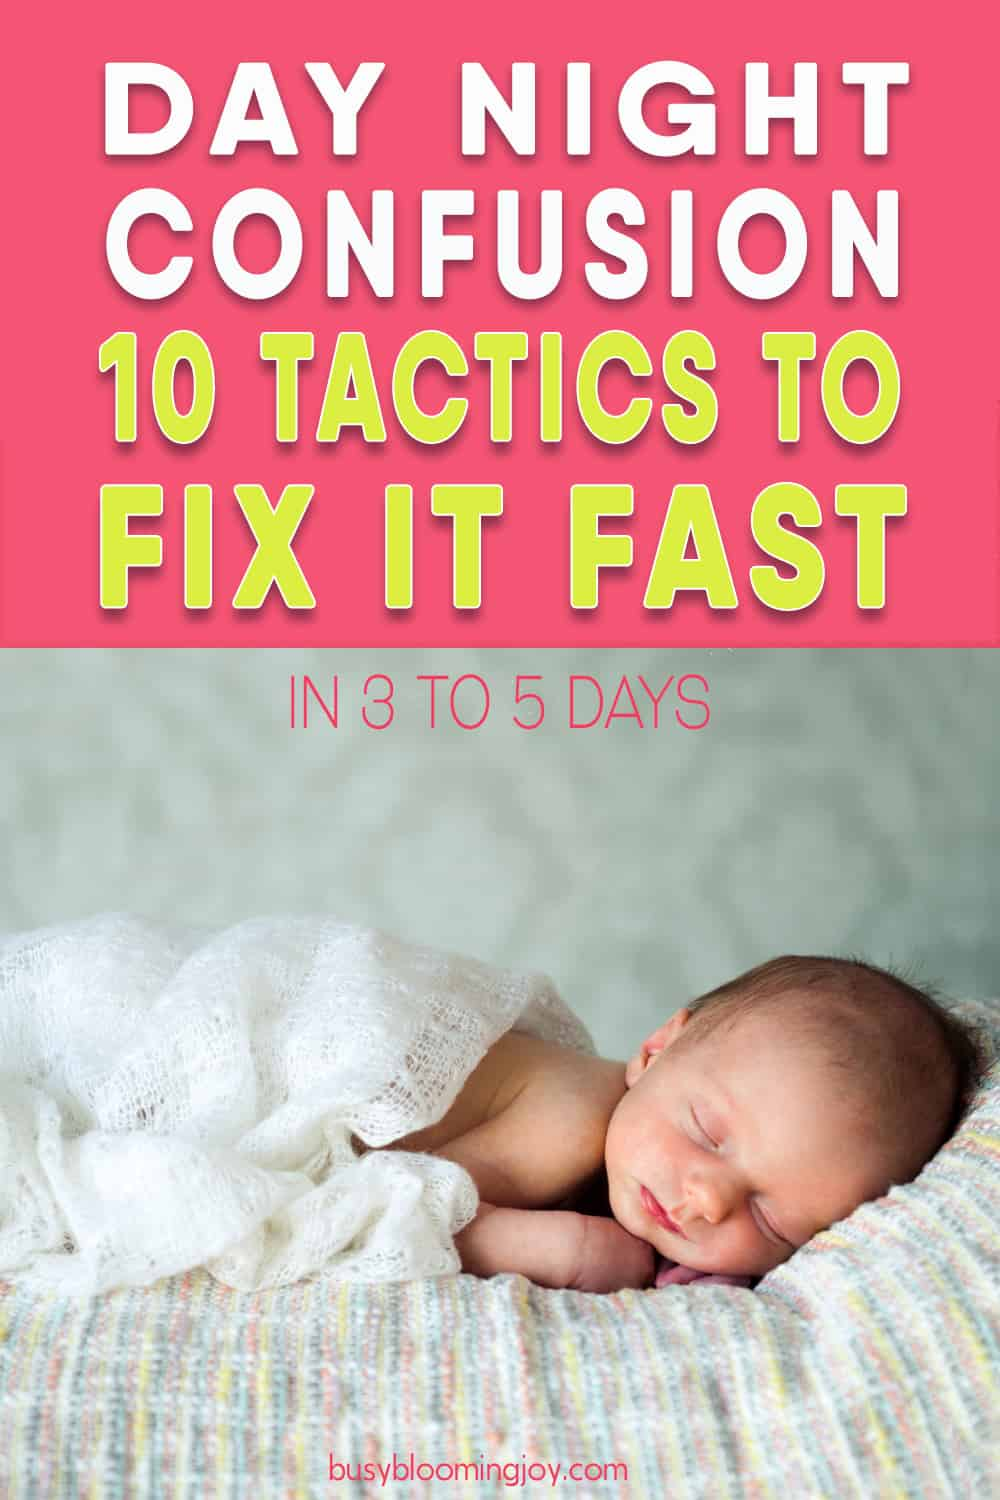 Newborn Sleeps All day? 10 fail-safe tactics to fix day night confusion fast!